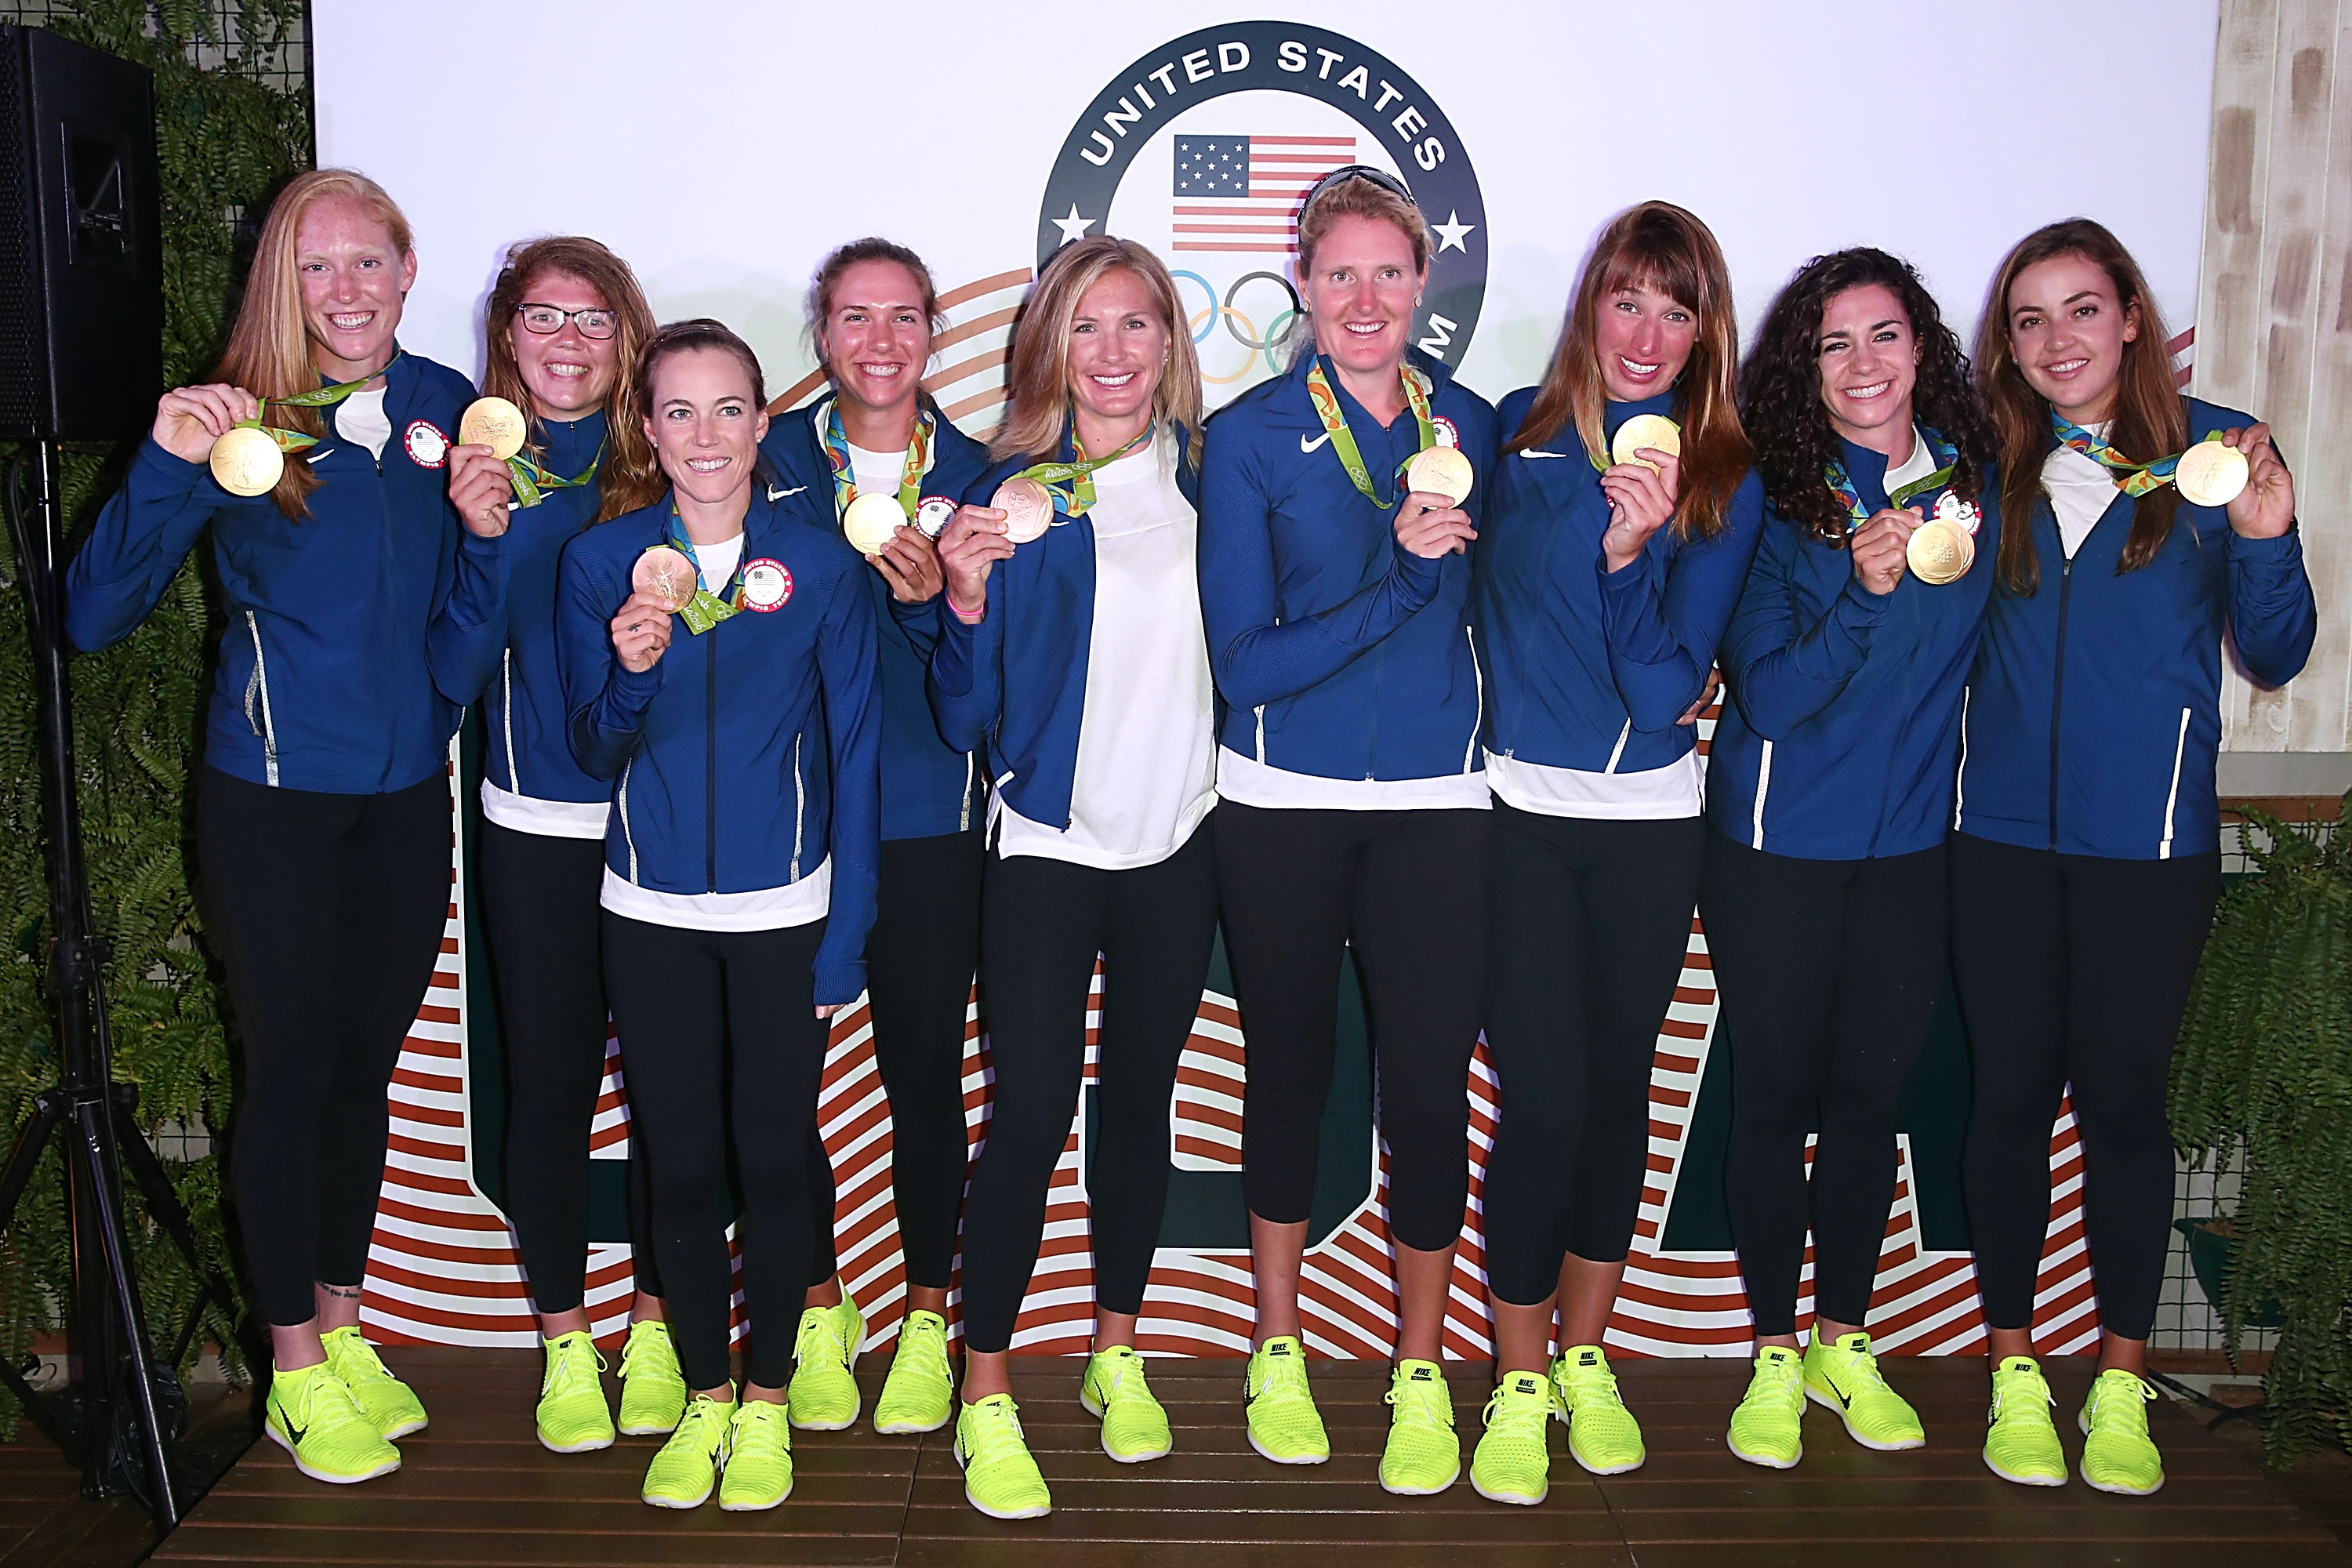 U.S. Olympians Emily Regan, Lauren Schmetterling, Katelin Snyder, Amanda Elmore, Meghan Musnicki, Elle Logan, Tessa Gobo and Kerry Simmonds pose with their gold medals at the USA House at Colegio Sao Paulo in Rio de Janeiro, Brazil.  (Getty Images)